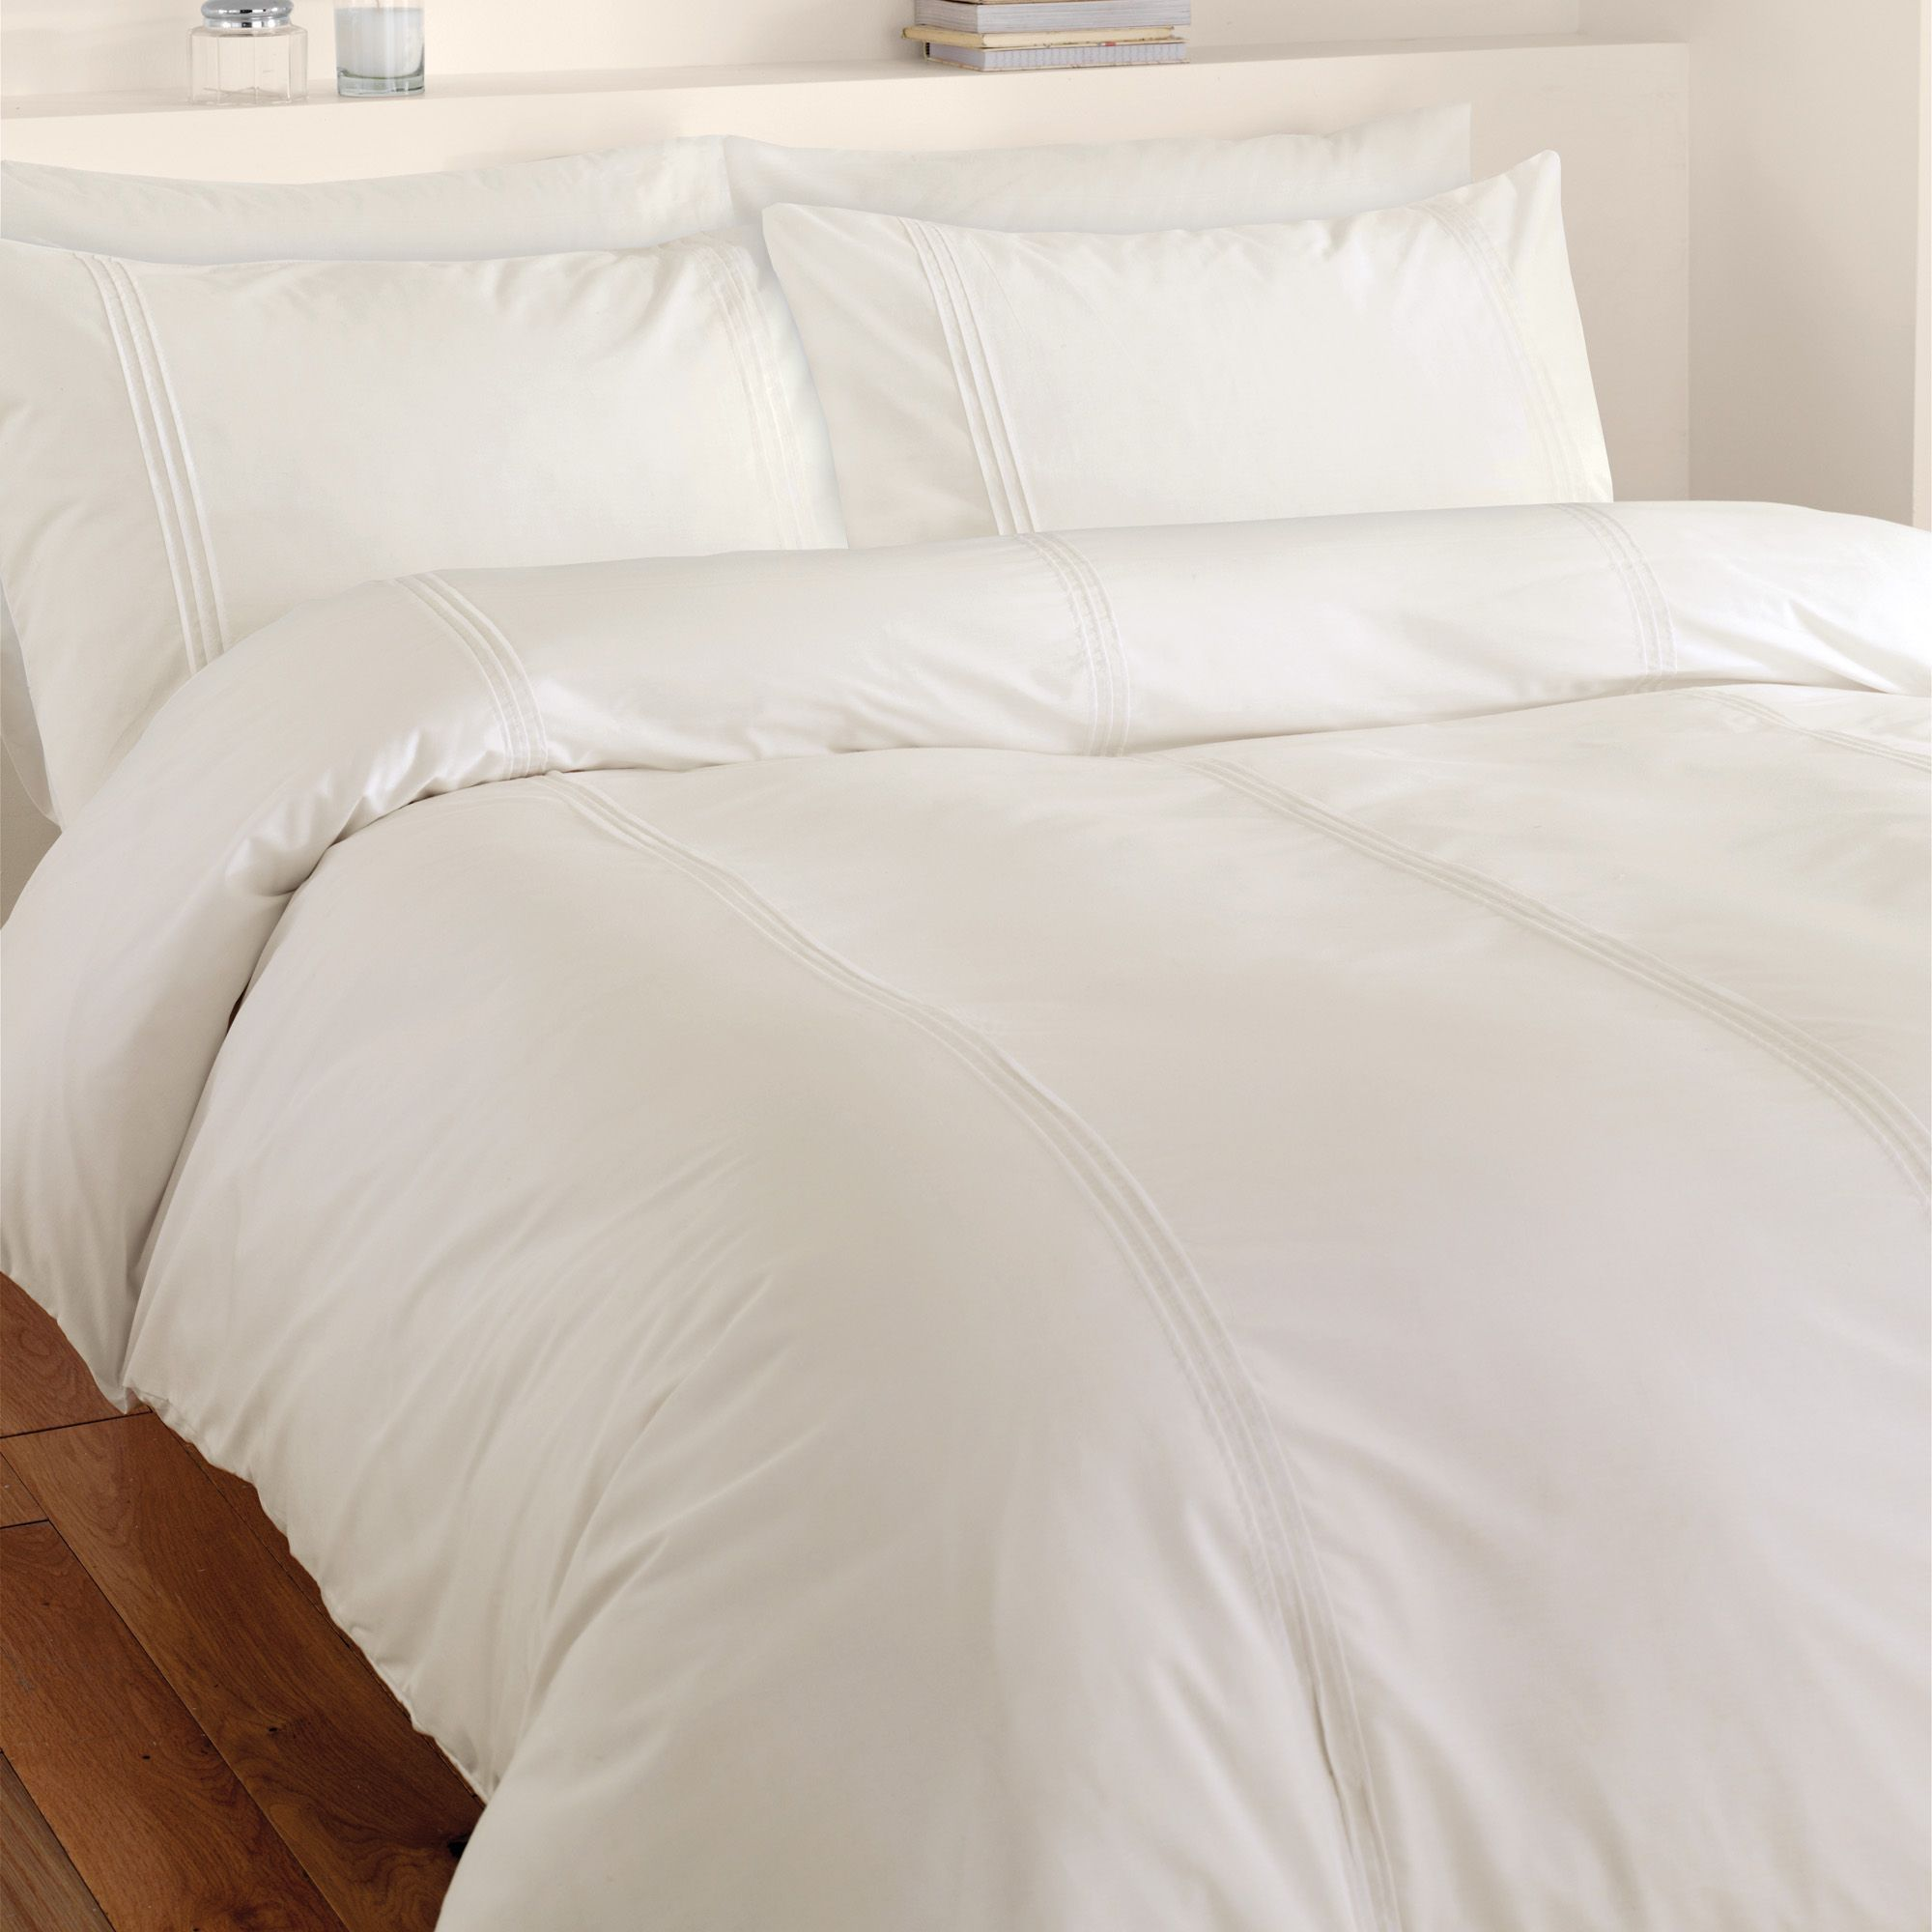 Chartwell Simplicity Plain Cream Single Bed Cover Set